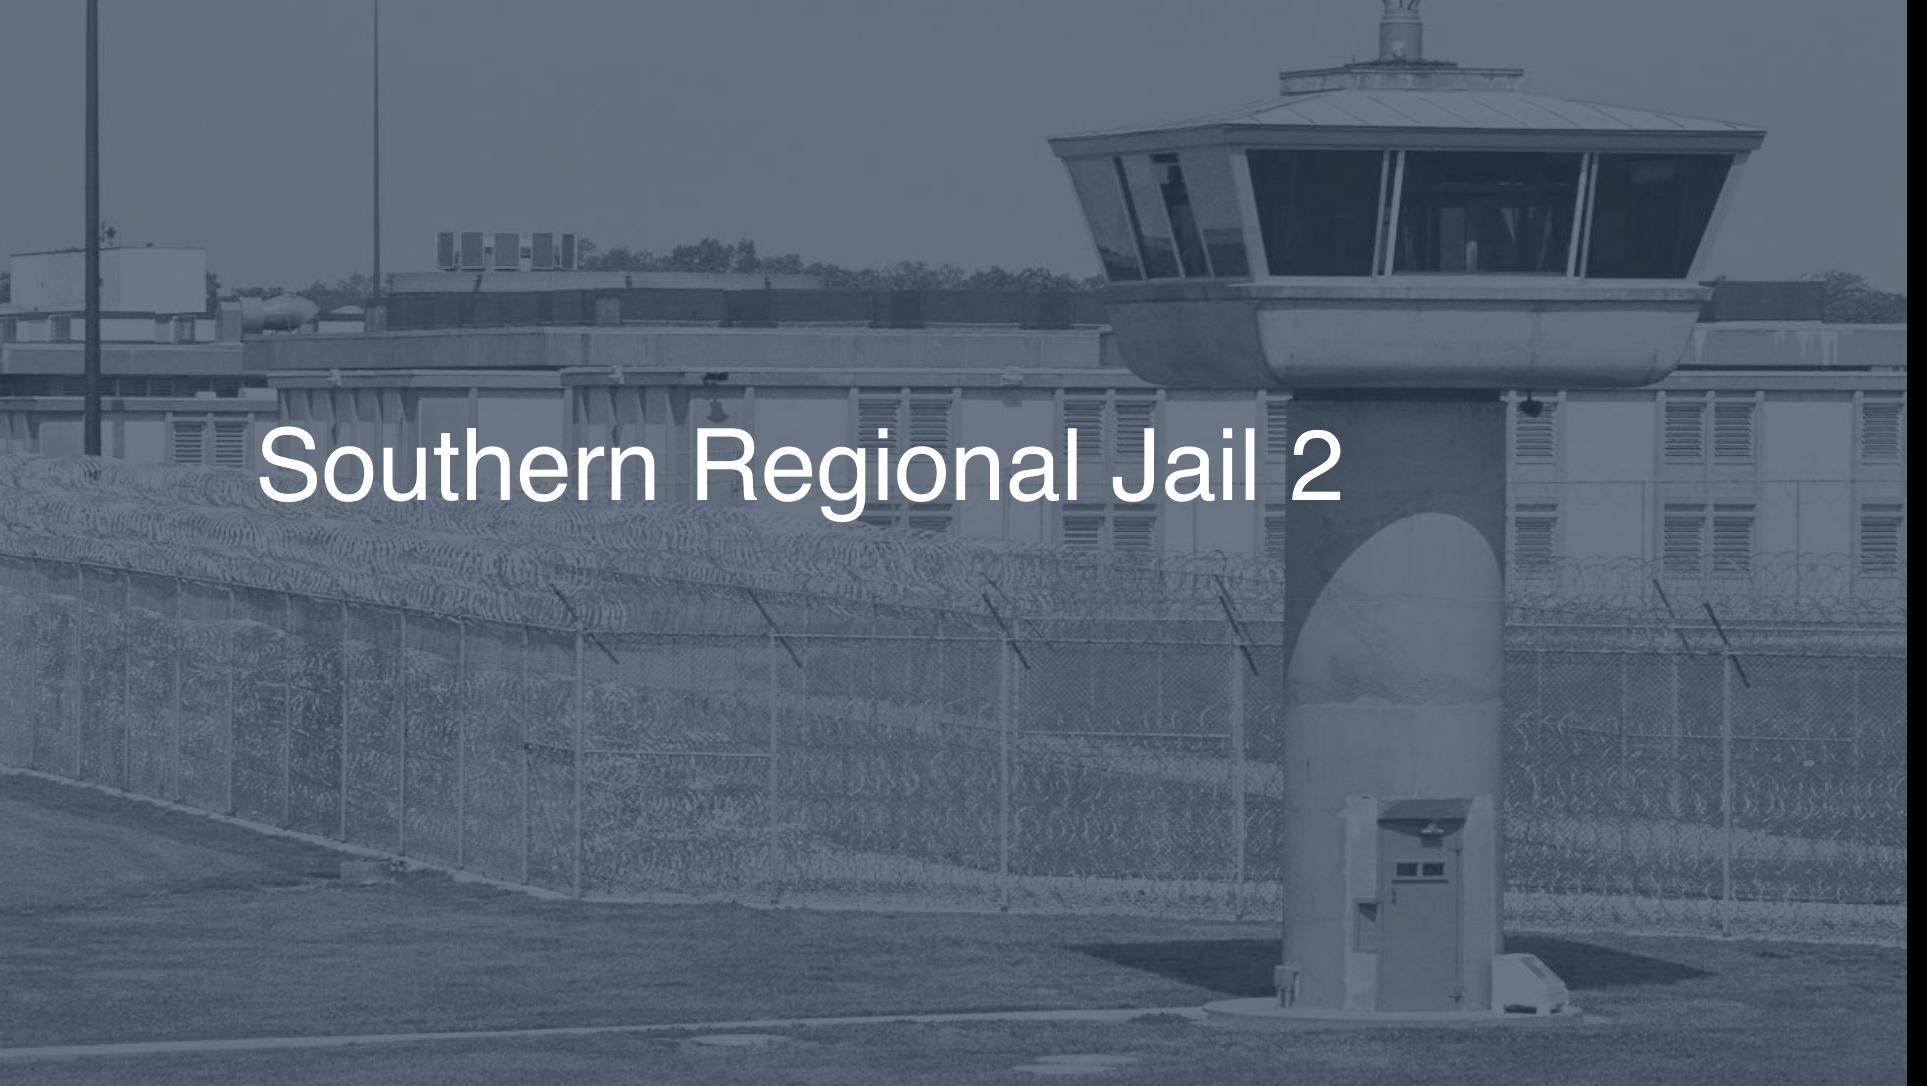 Southern Regional Jail   Pigeonly - Inmate Search, Locate